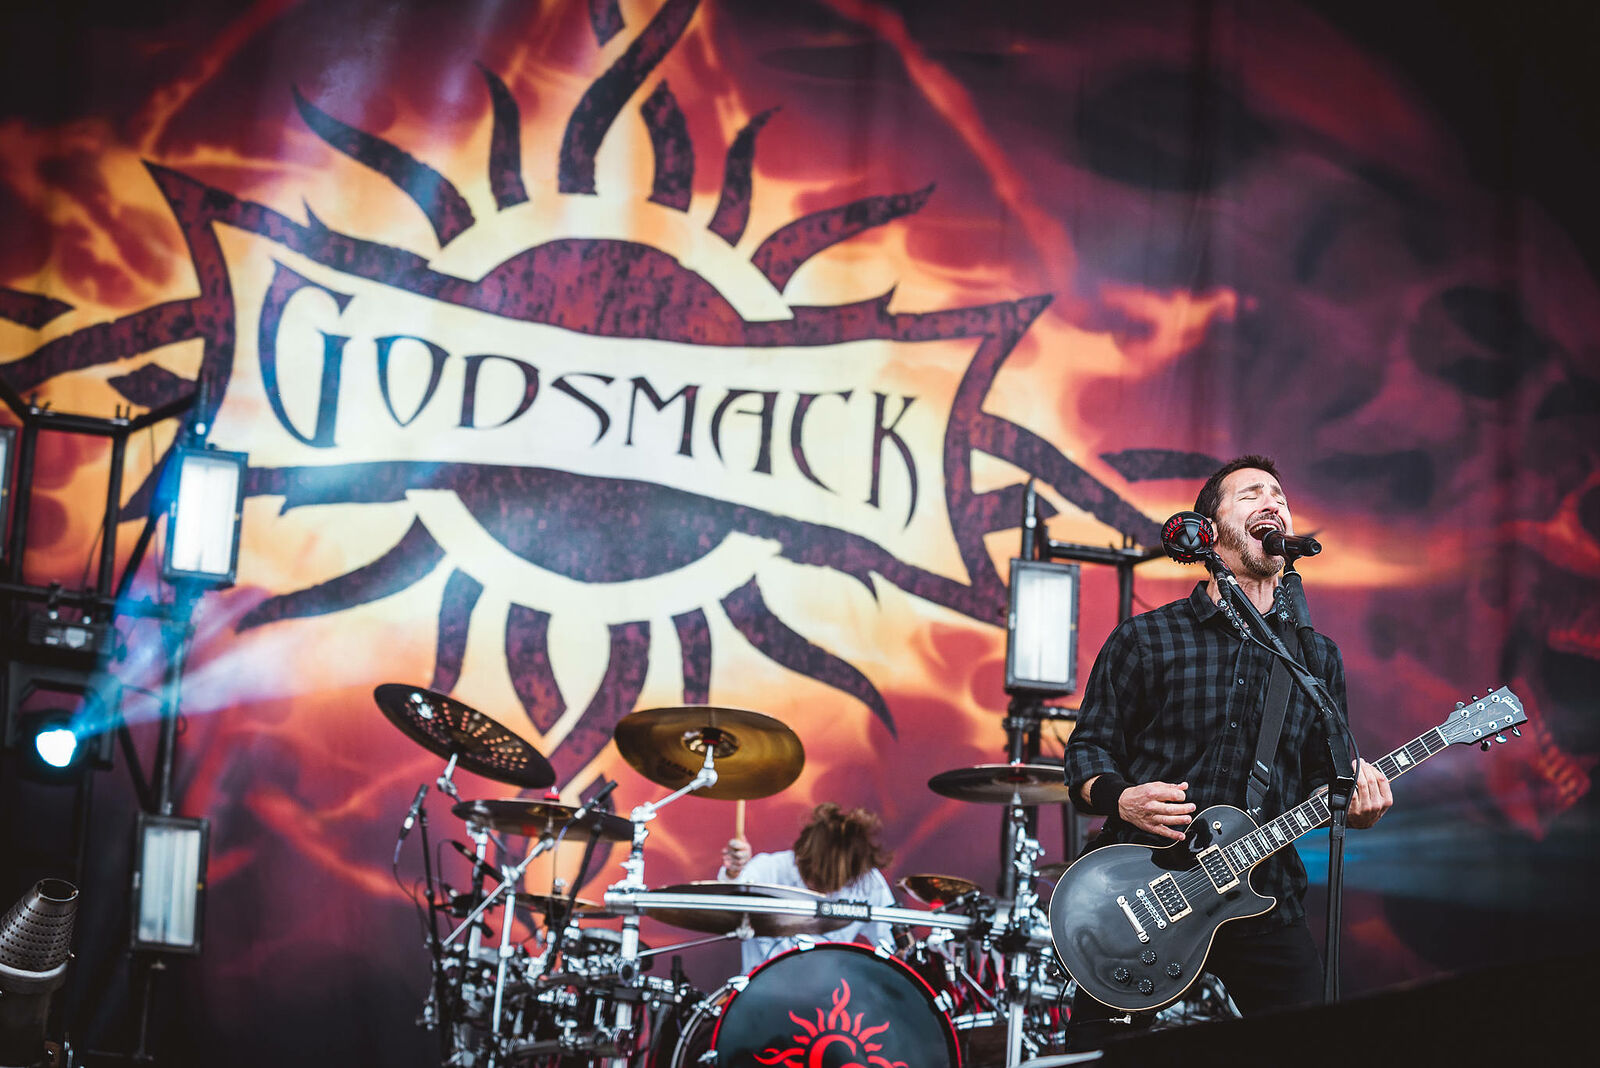 Godsmack © 2019 James Bridle c/o Download